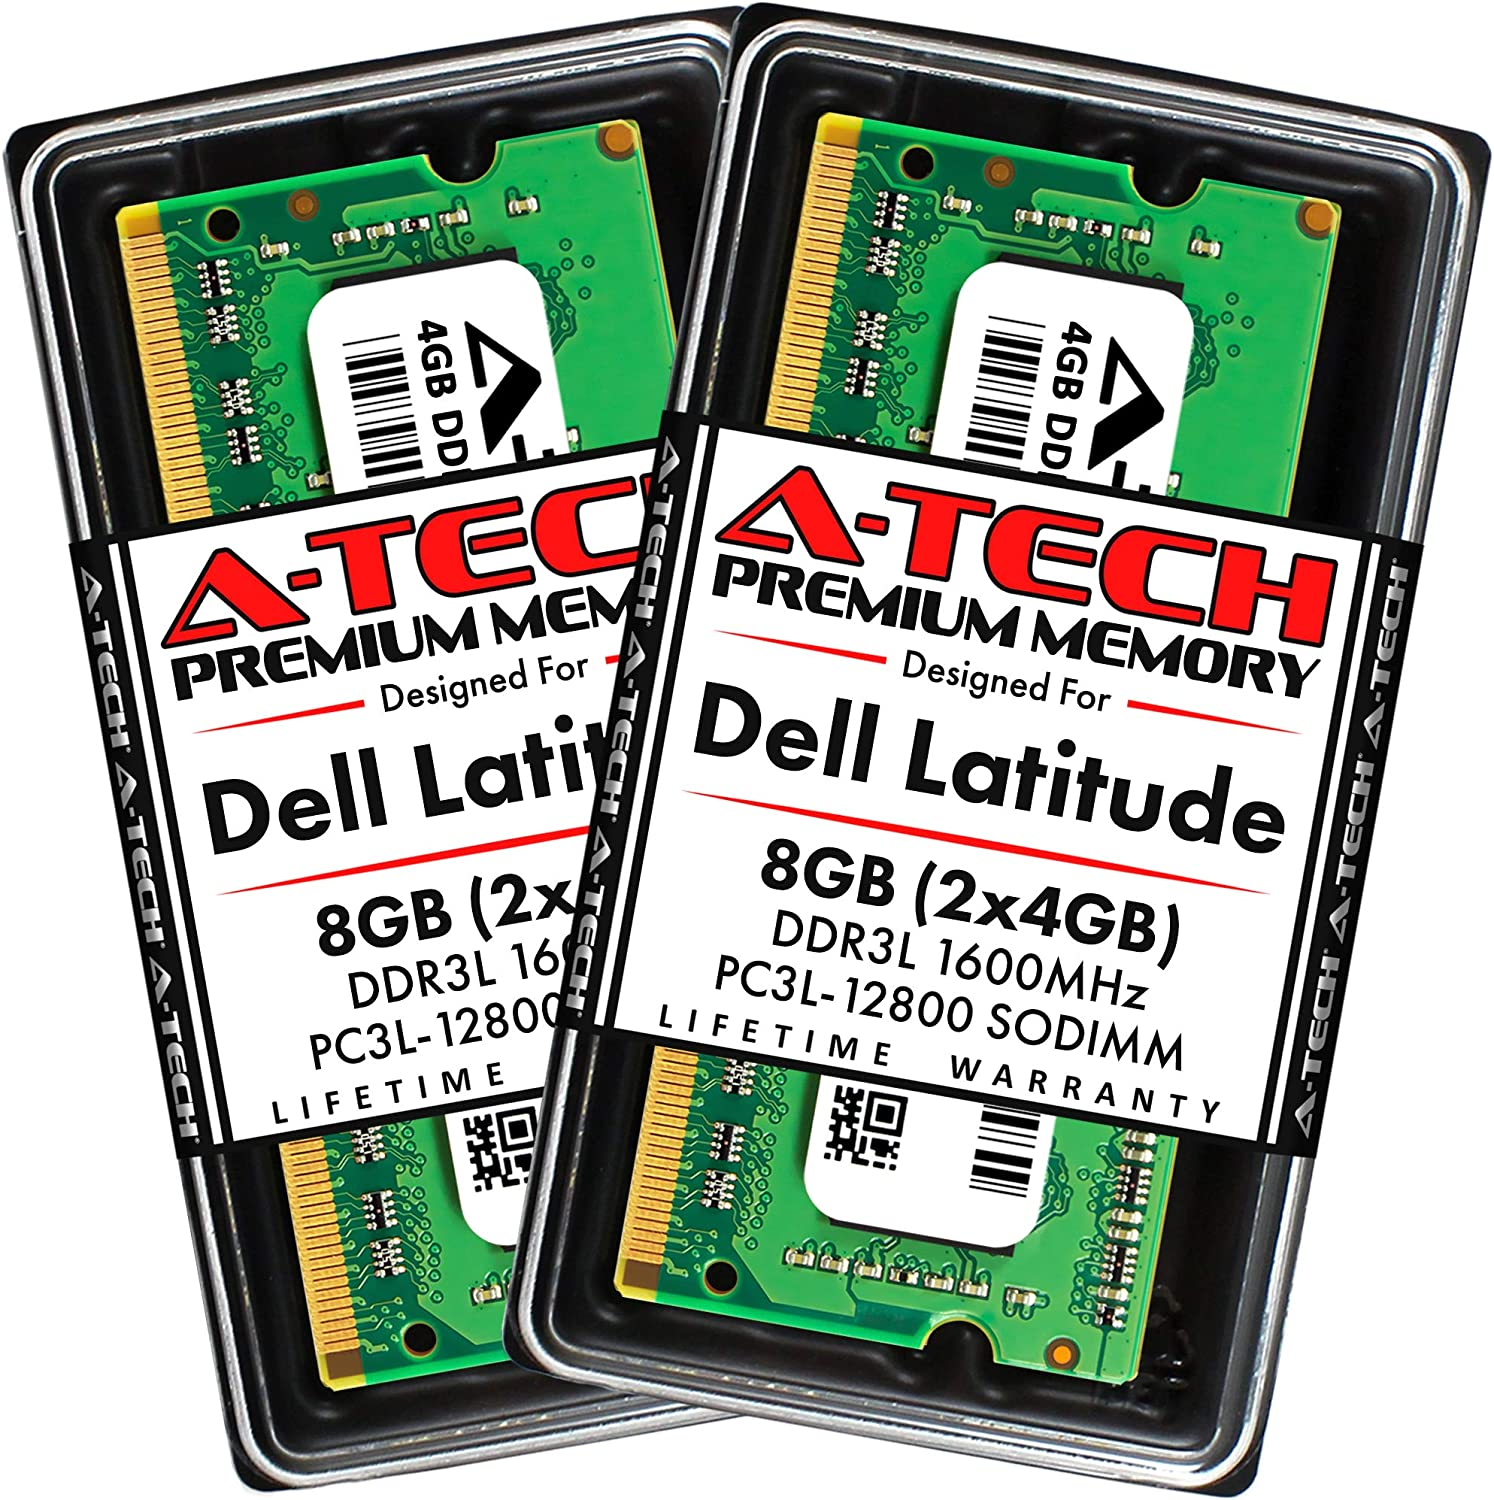 A-Tech 8GB (2x4GB) RAM for Dell Latitude E7440, E7240, E6540, E6440, E5540, E5440 | DDR3/DDR3L 1600MHz SODIMM PC3L-12800 Laptop Memory Upgrade Kit